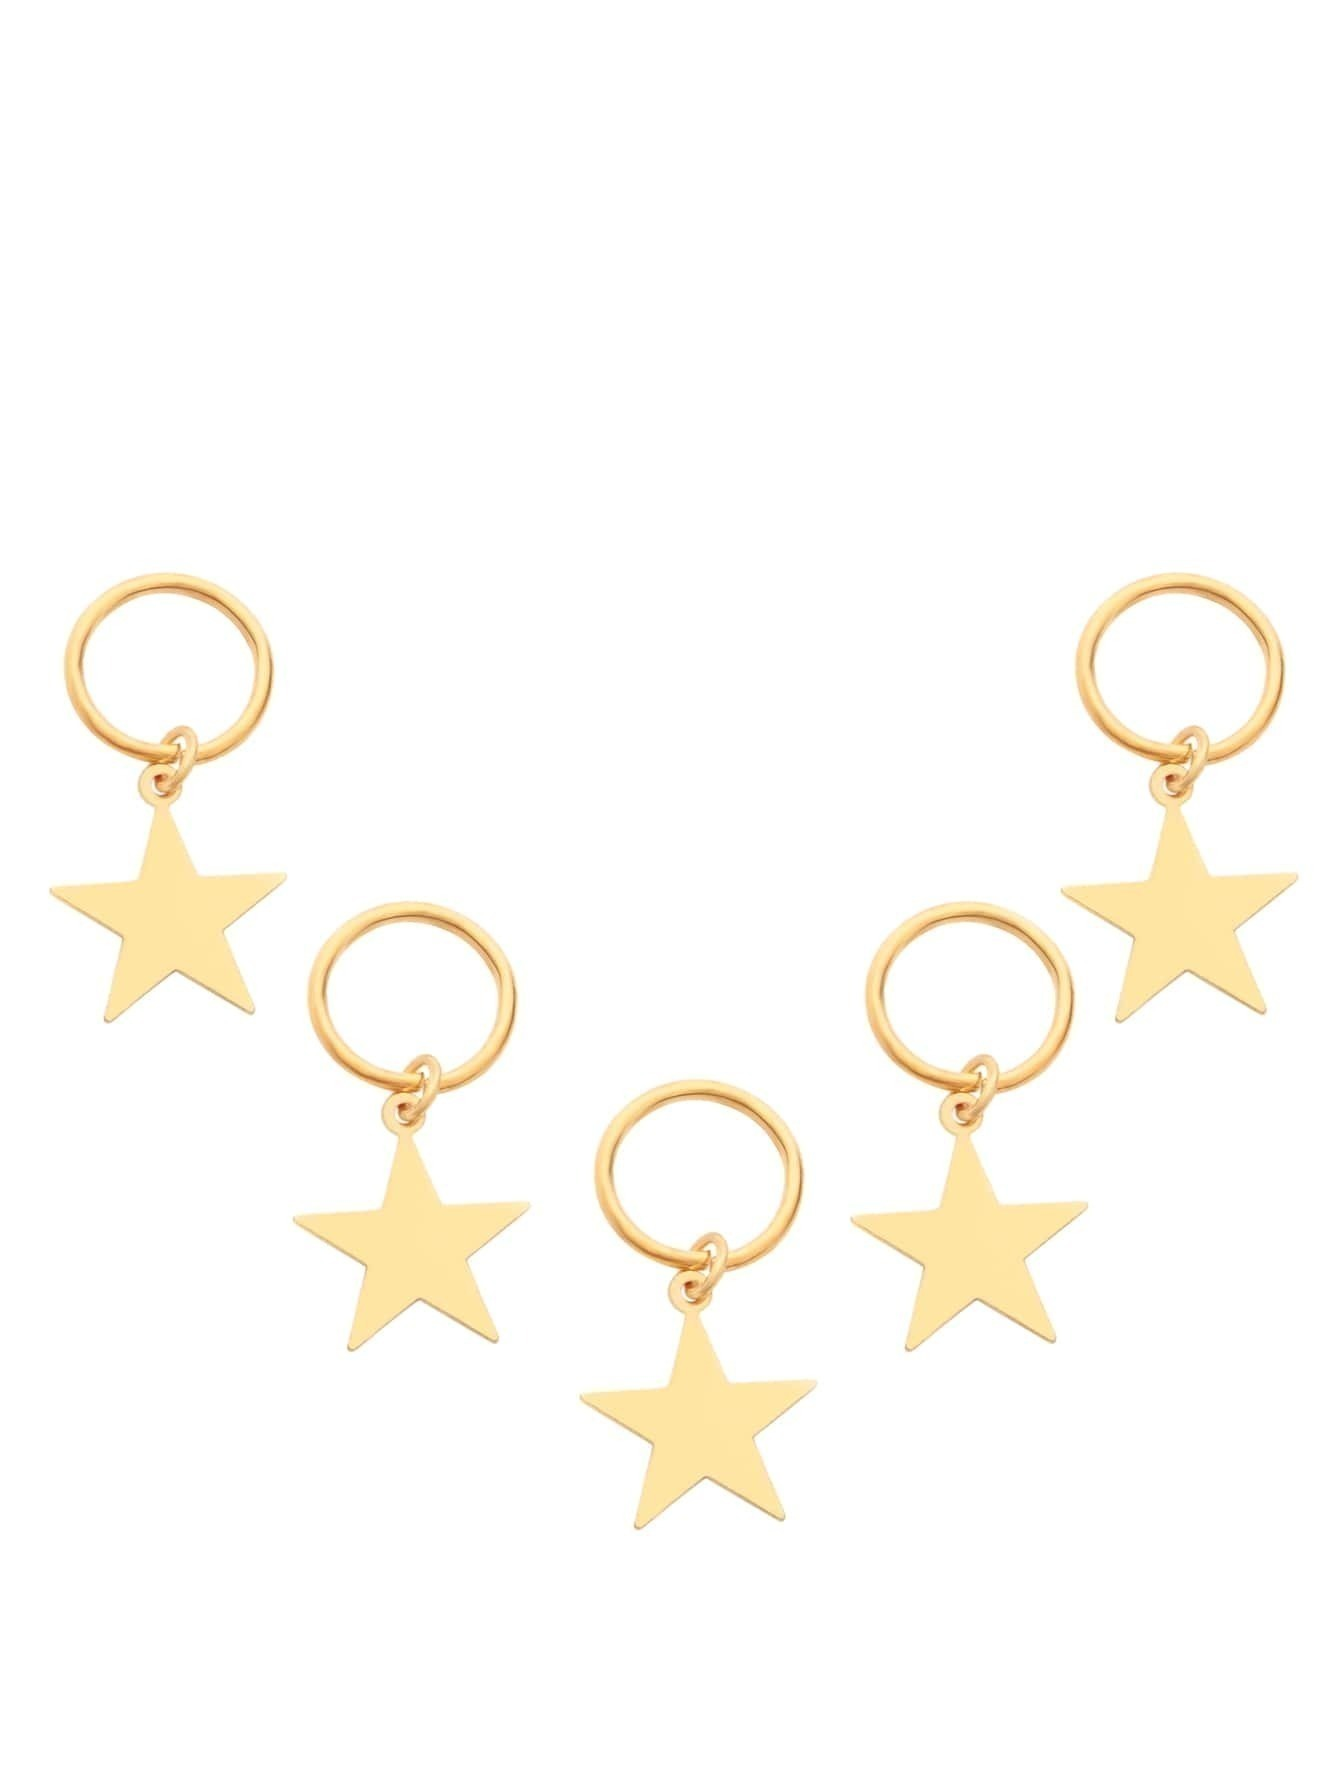 5PCS Gold Plated Star Hair AccessoriesFor Women-romwe